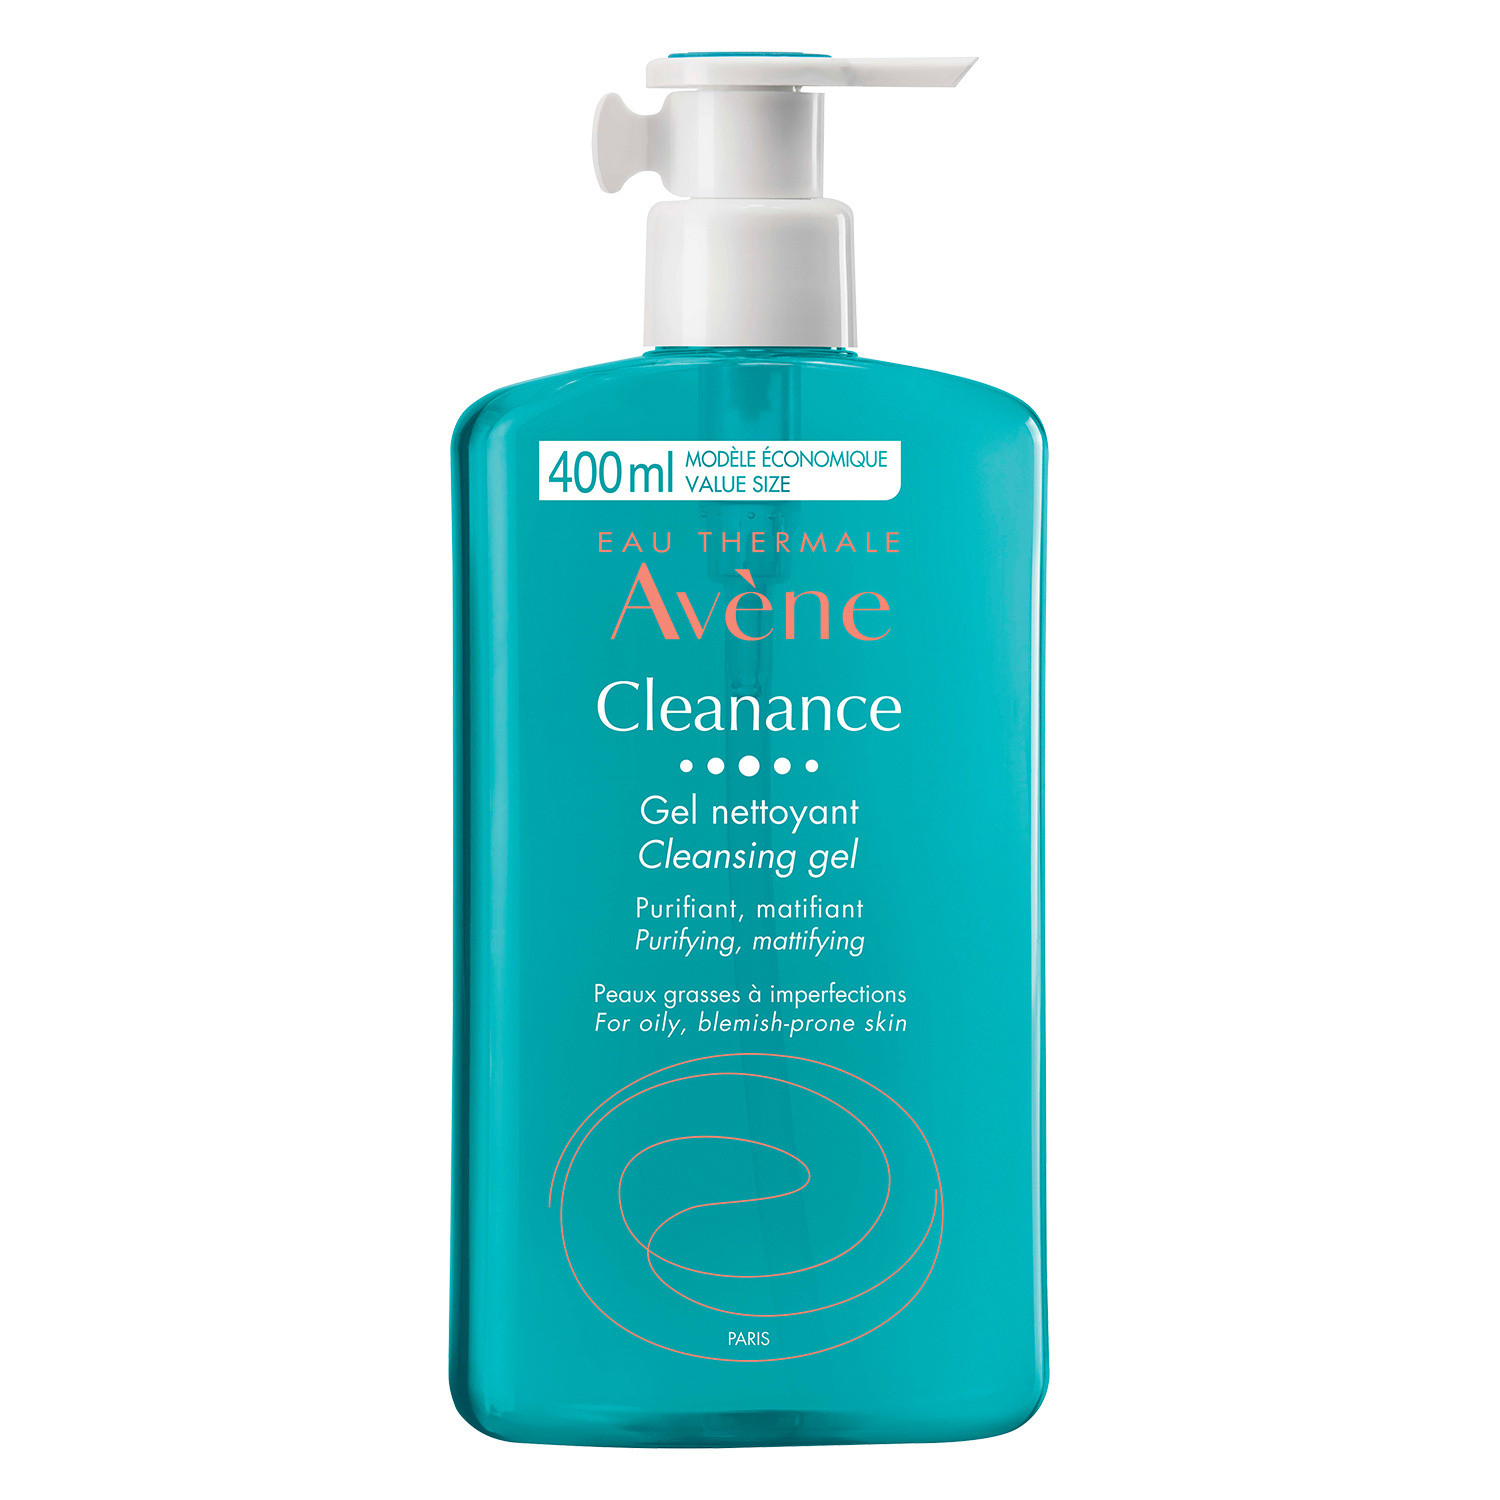 Avene Cleanance Cleansing Gel Cleanser for Blemish-Prone Skin